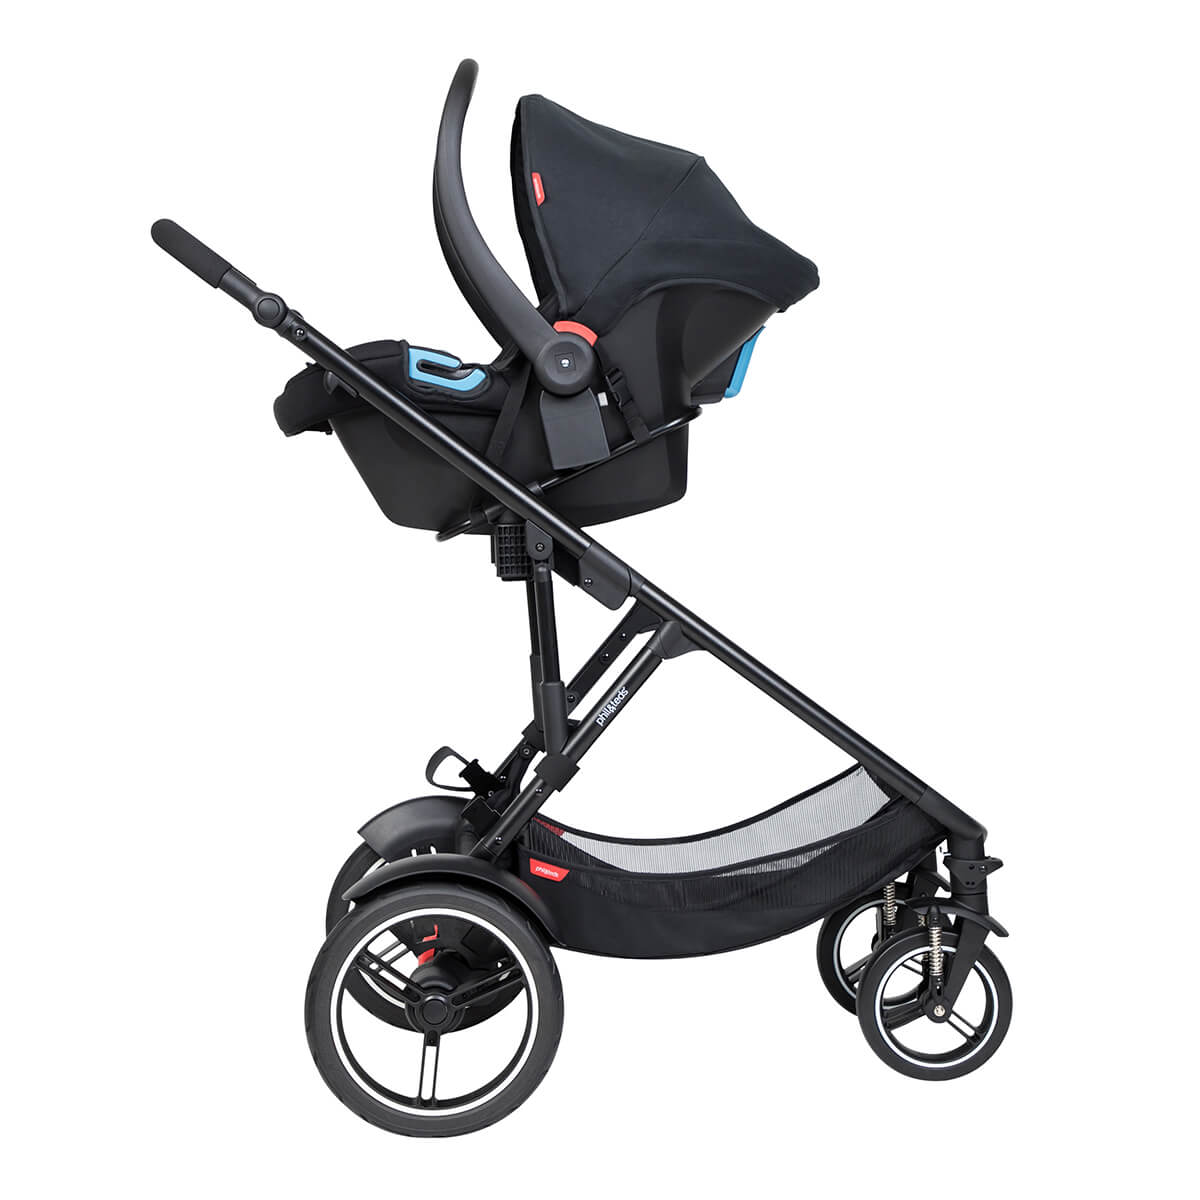 https://cdn.accentuate.io/4390319587424/19440099360952/philteds-voyager-buggy-with-travel-system-in-parent-facing-mode-v1626488672577.jpg?1200x1200